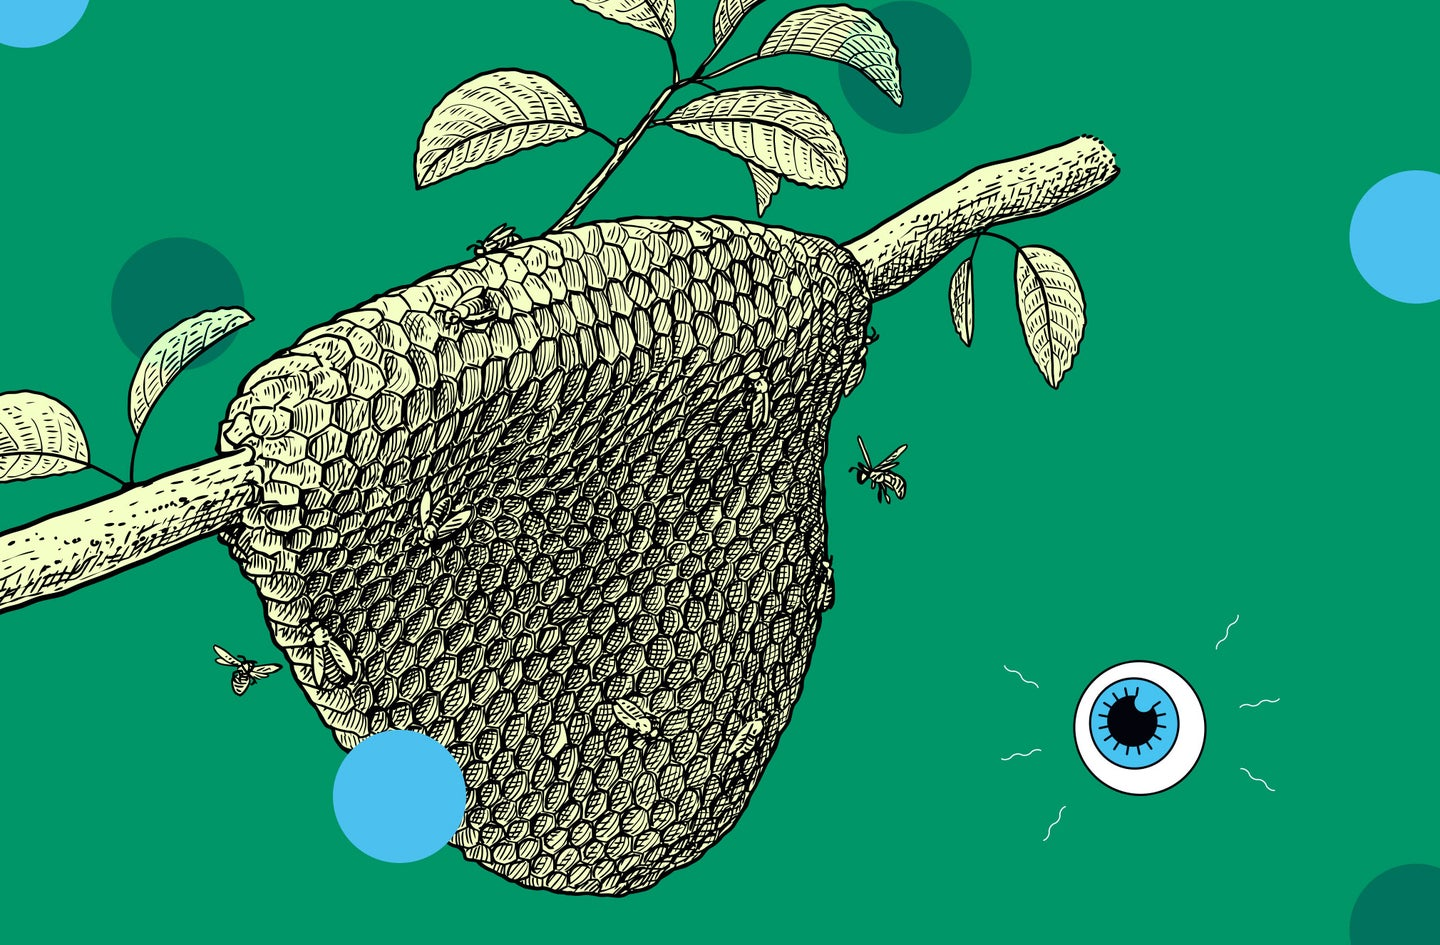 an illustration of a bee hive on a tree branch against a green background with a small drawing of an eyeball logo